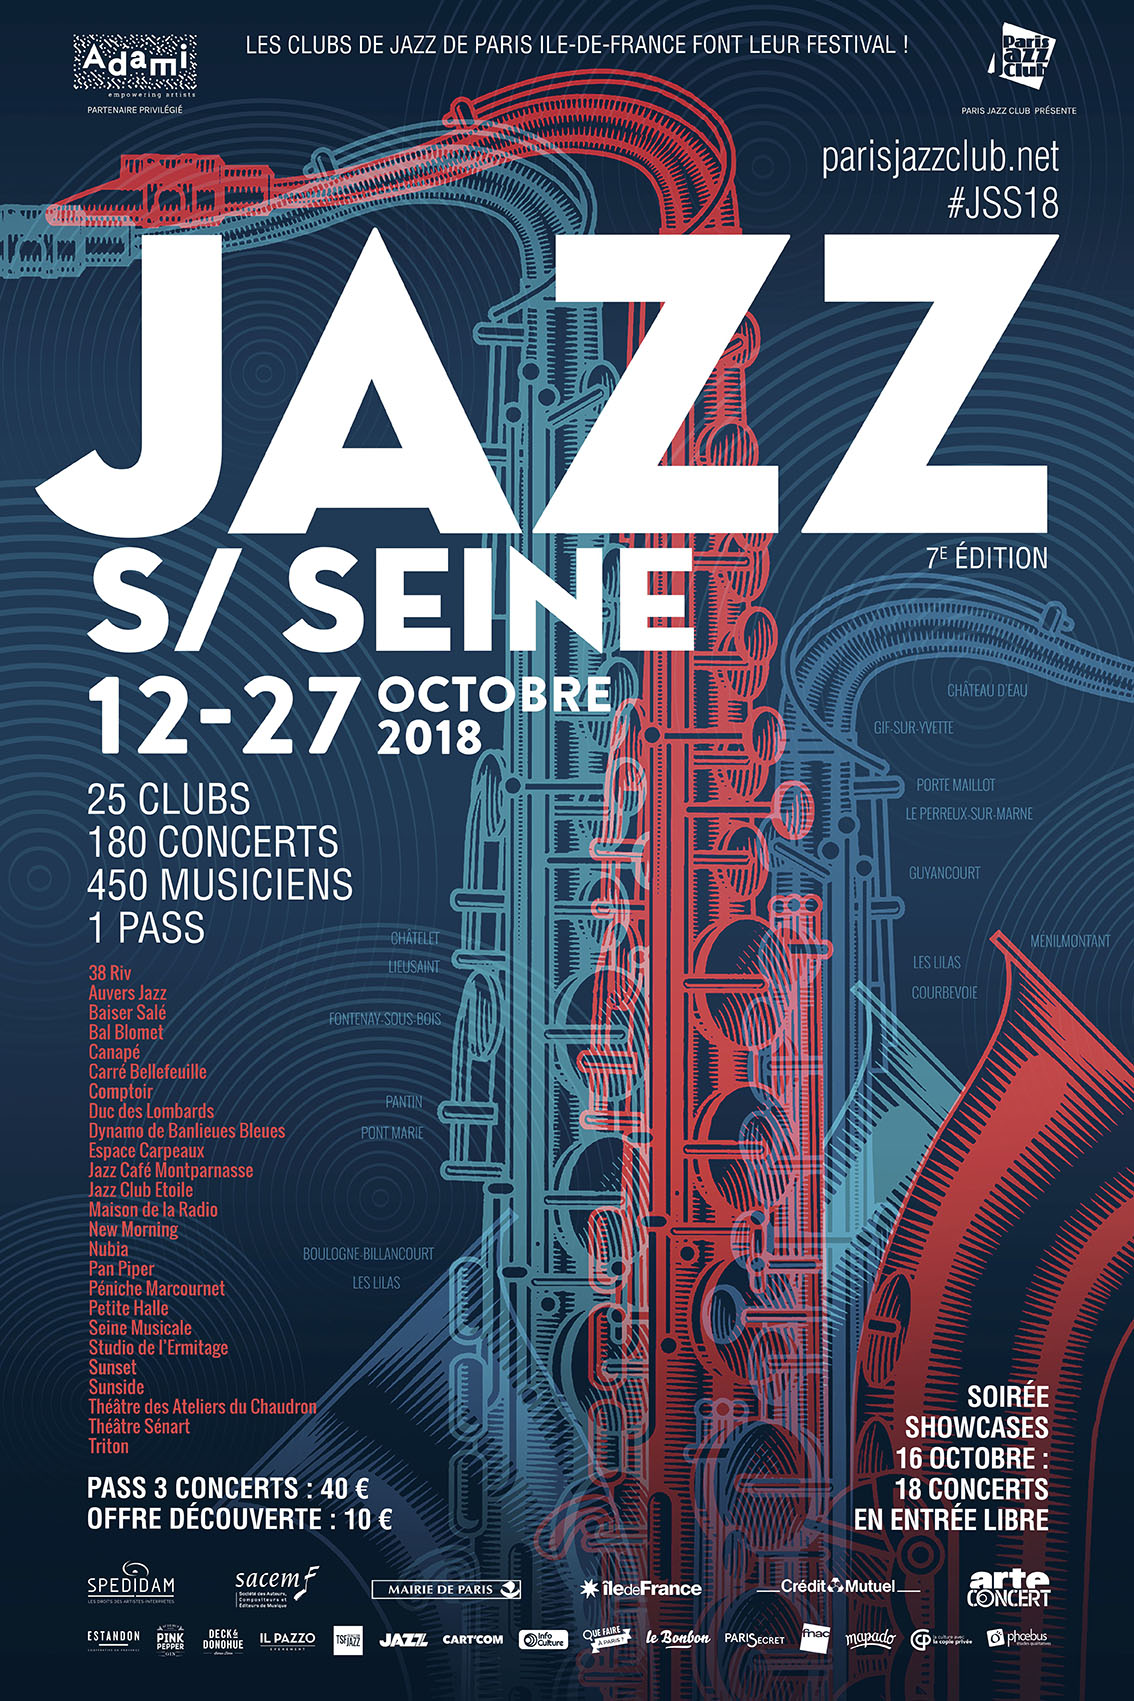 Arte Concert Opera De Paris Jazz On Seine 2018 Paris Jazz Club